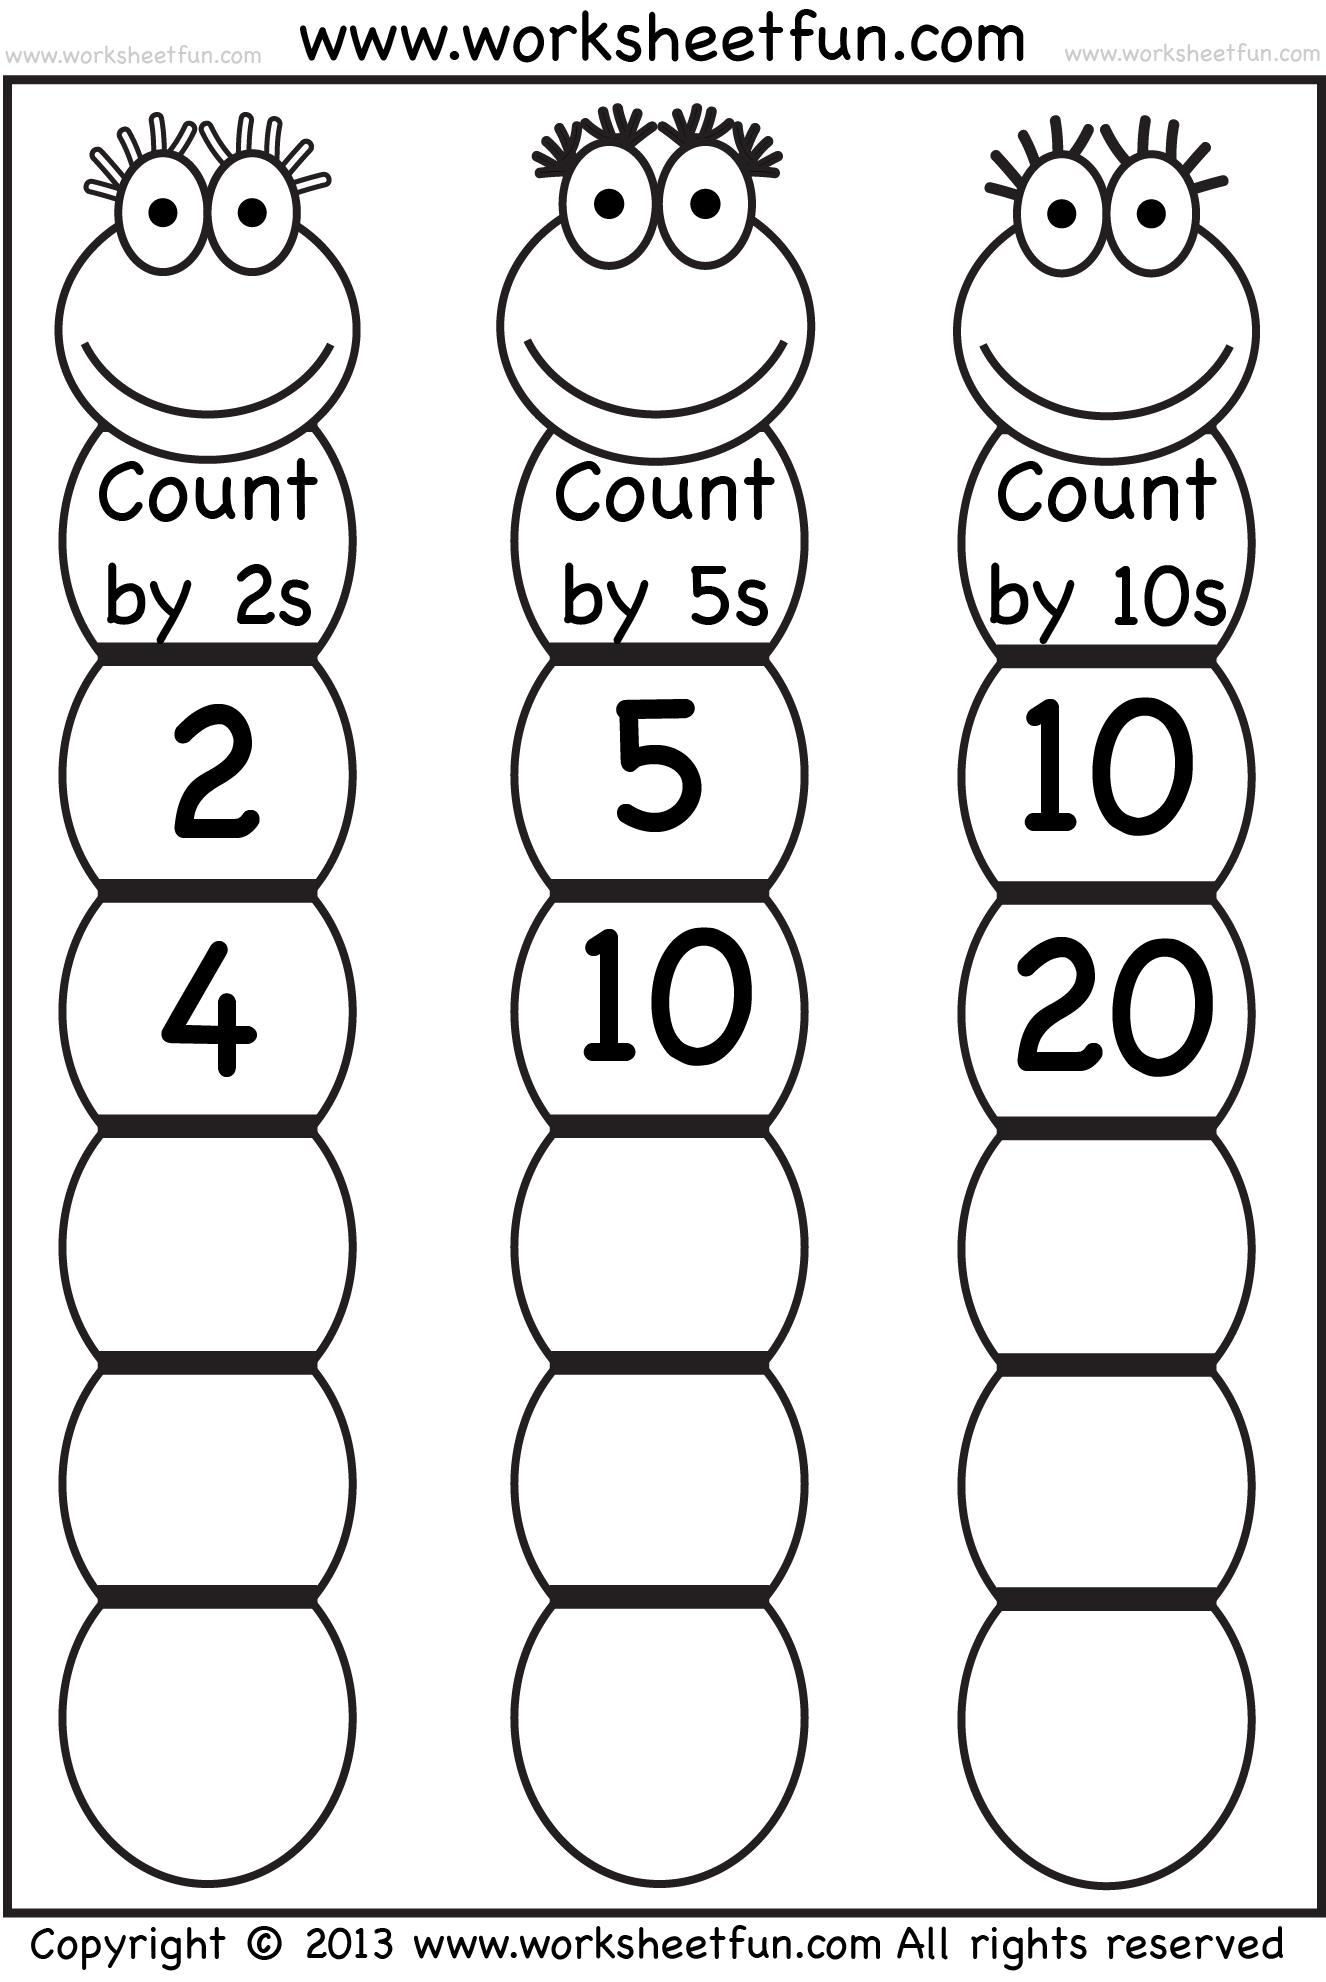 Worksheets Counting By Tens Worksheet count by tens worksheets 2nd grade math practice on 10s 1